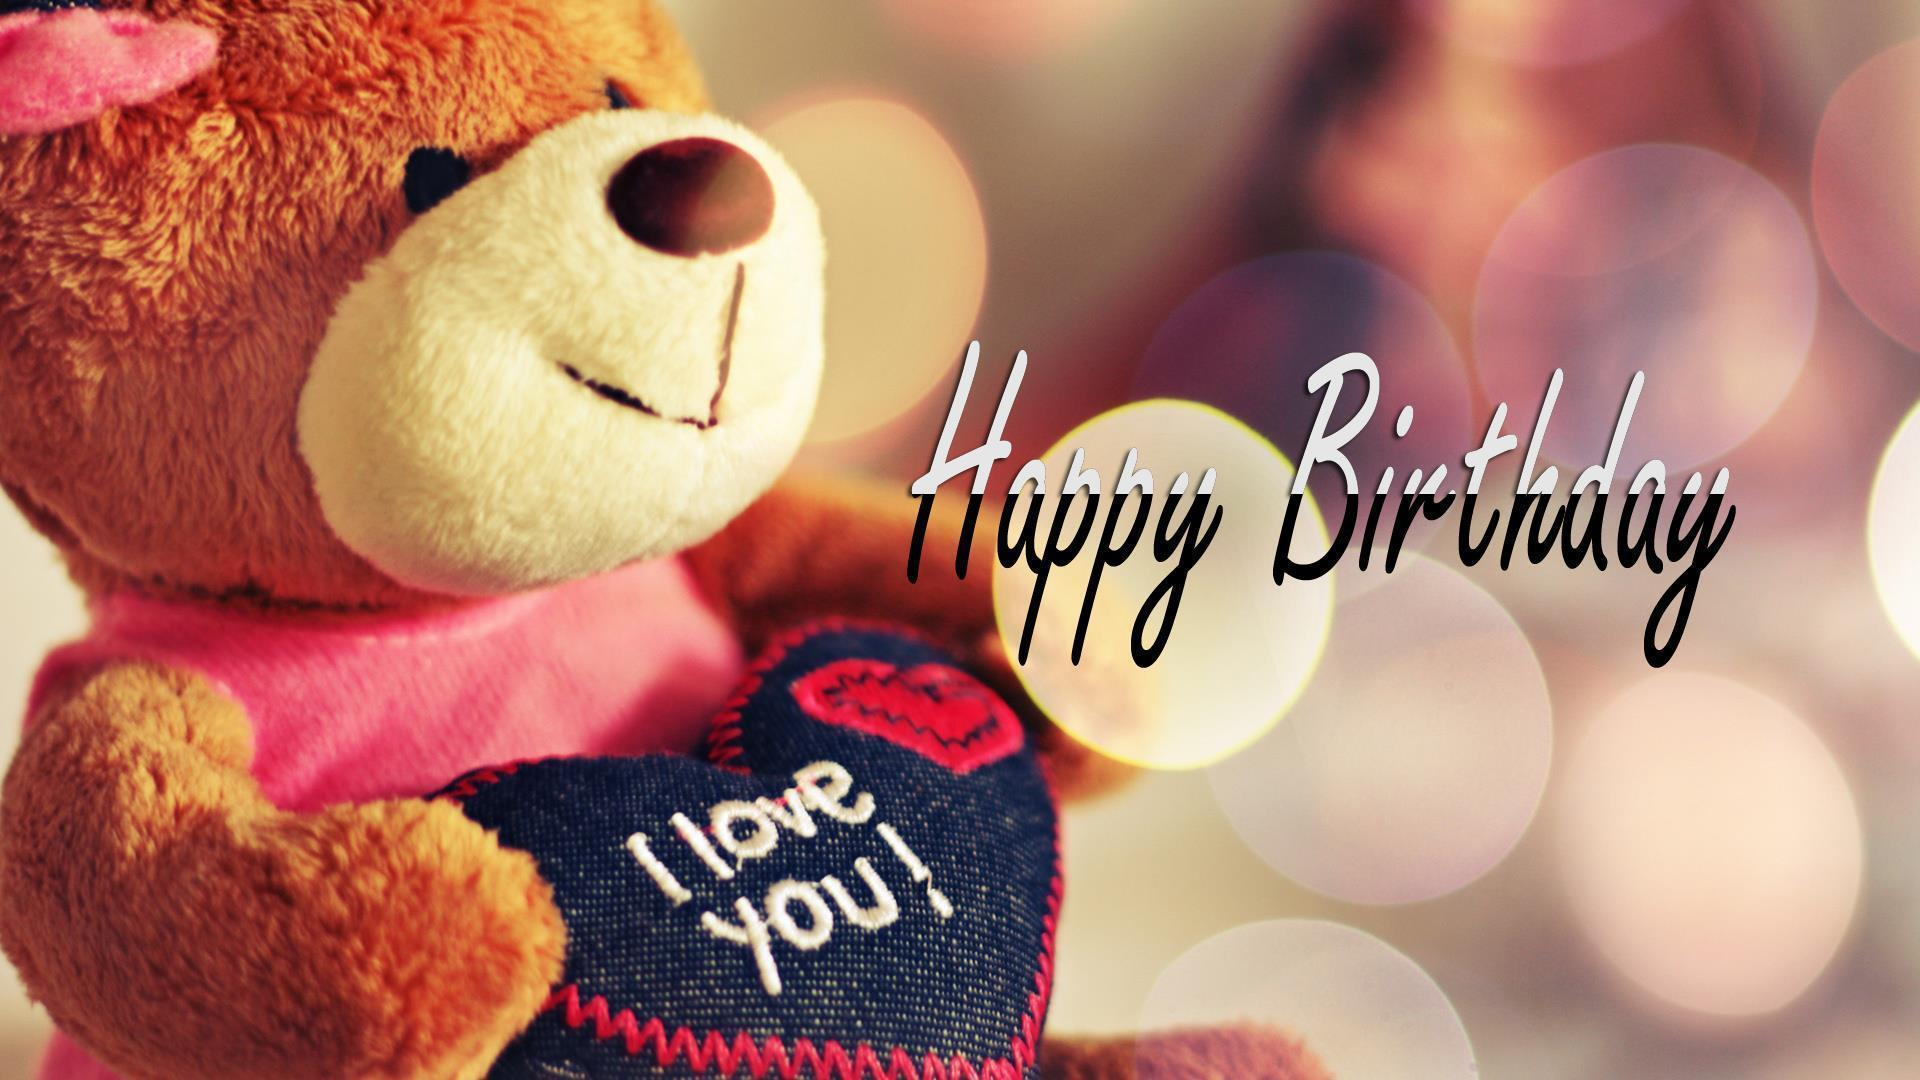 Happy Birthday To my Love HD Wallpapers, Messages & Quotes